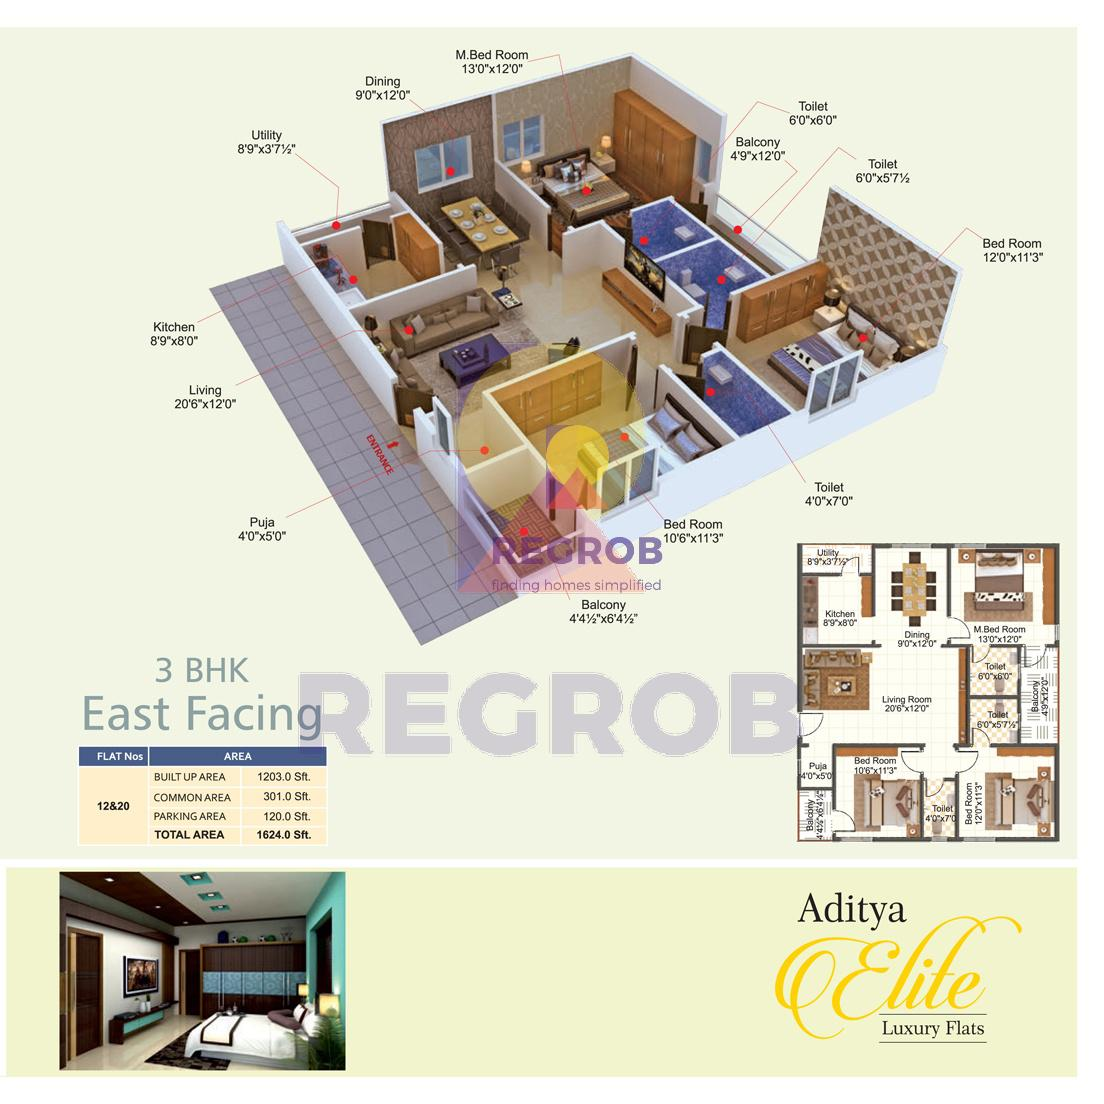 Aditya Elite 3 BHK Floor Plan